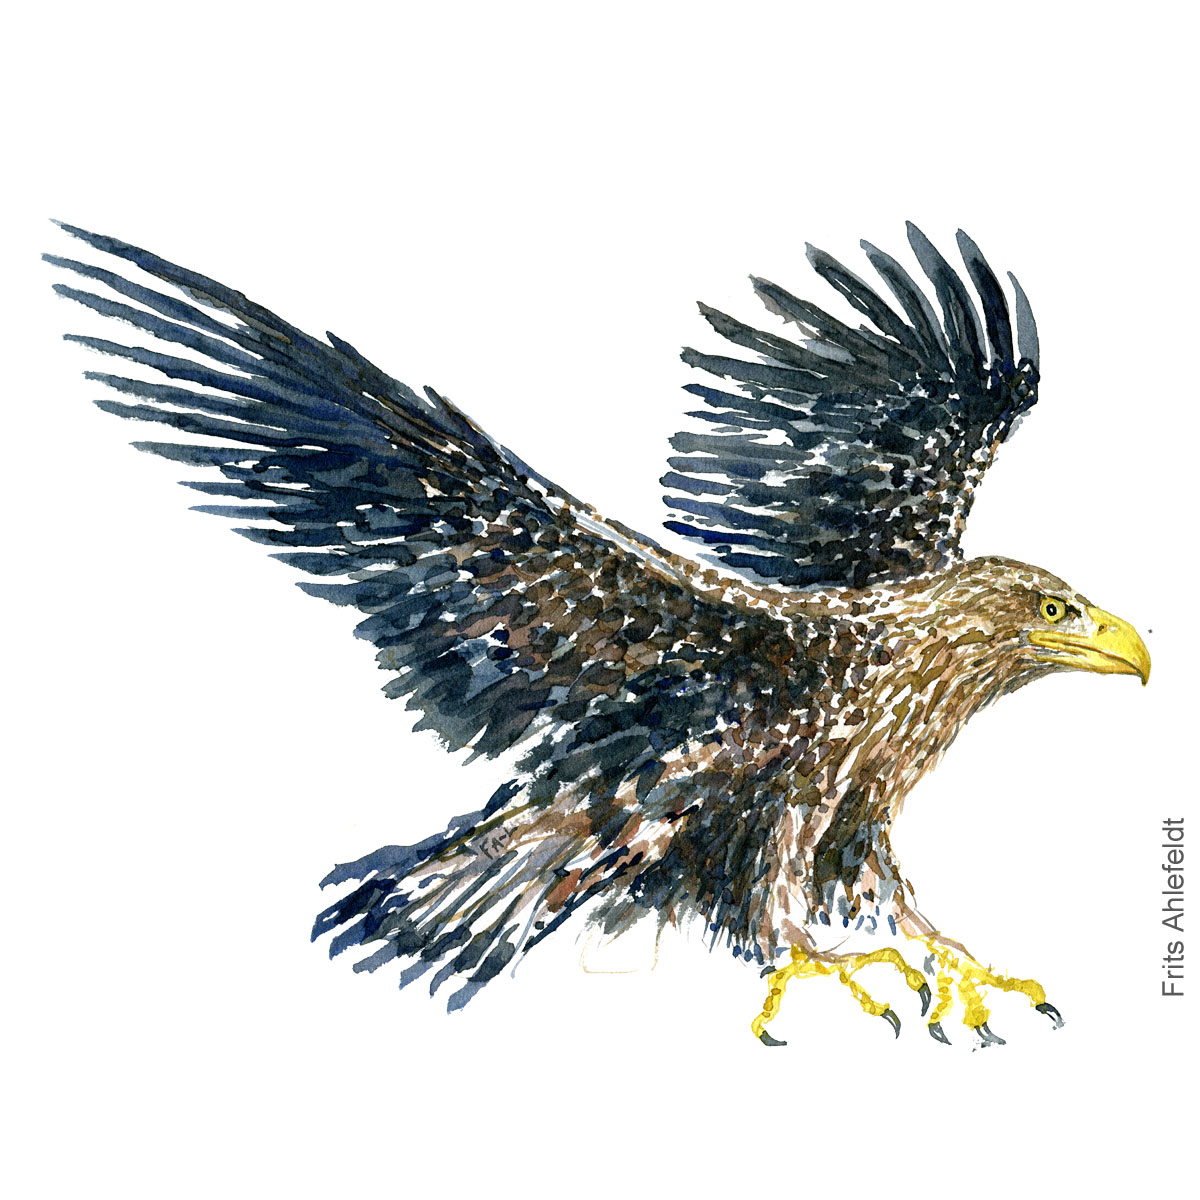 Havoern - White-tailed eagle - Bird painting in watercolor by Frits Ahlefeldt - Fugle akvarel